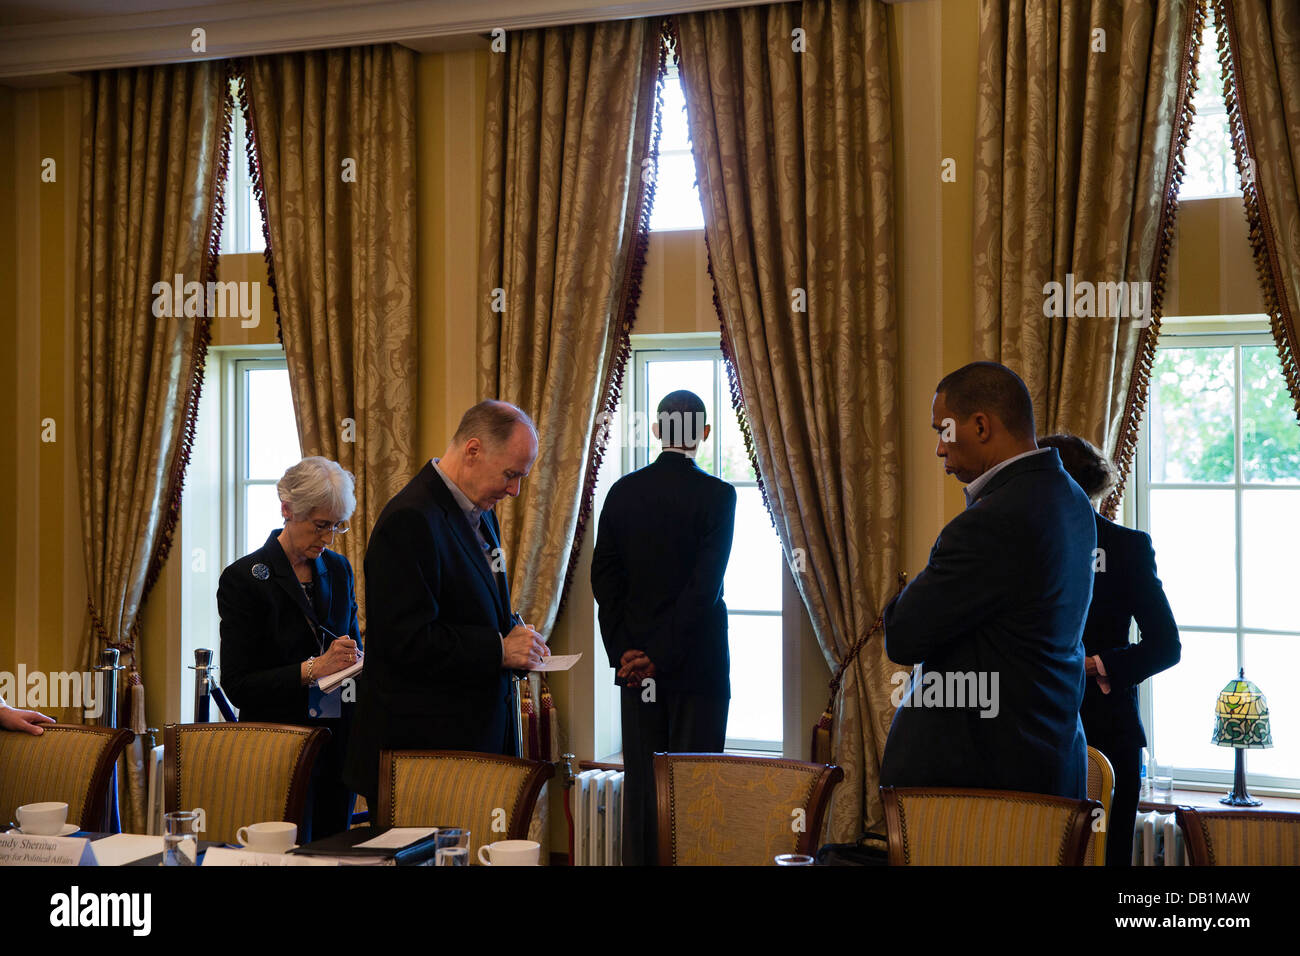 US President Barack Obama waits with advisors before a bilateral meeting during the G8 Summit at the Lough Erne - Stock Image